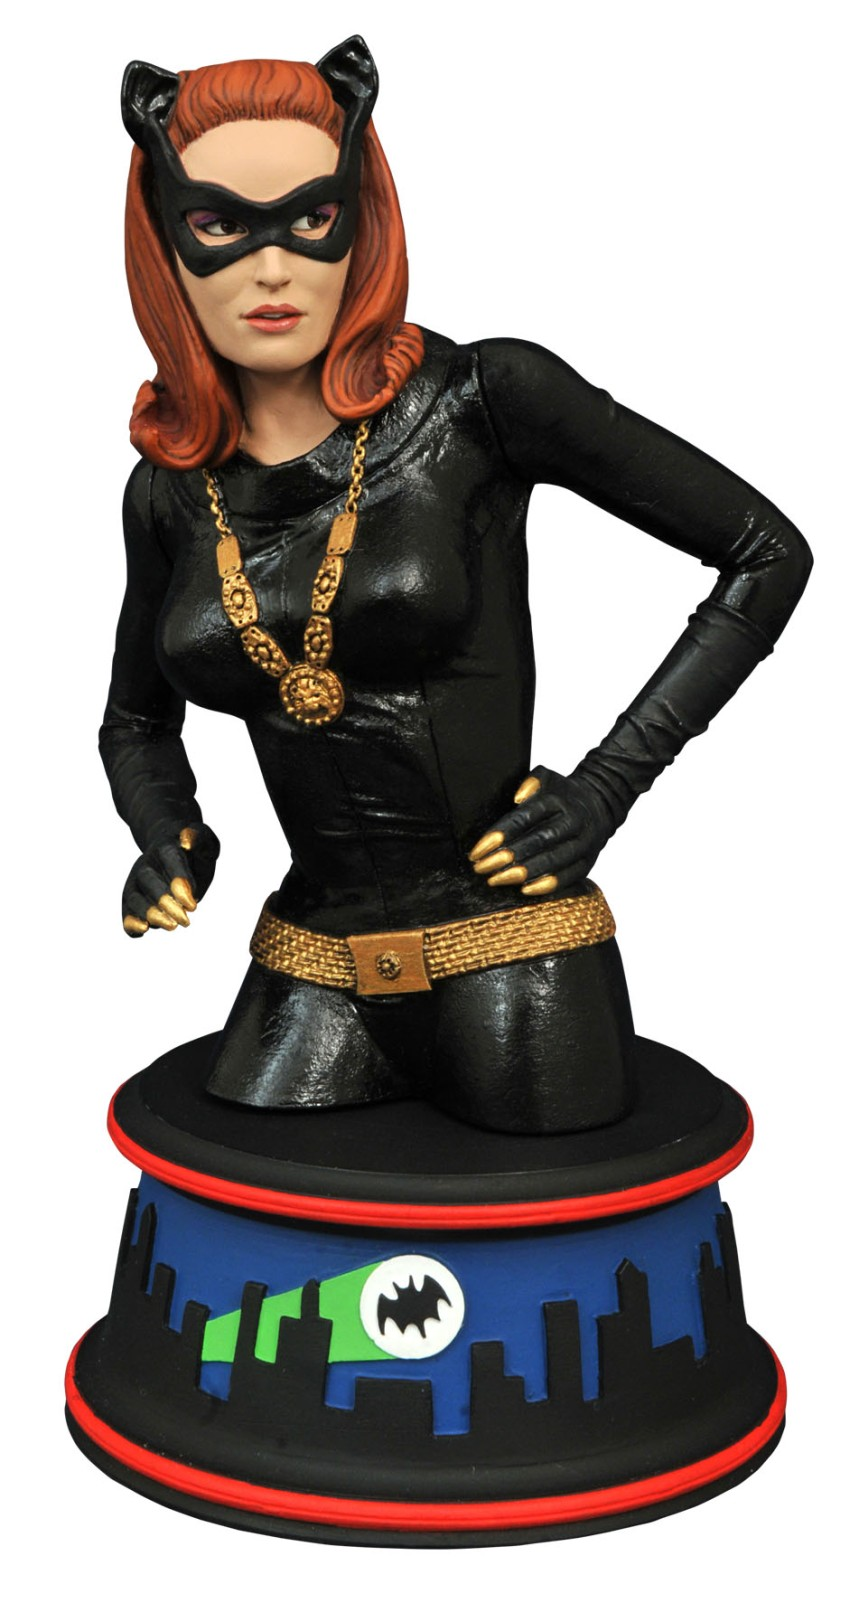 CatwomanBust